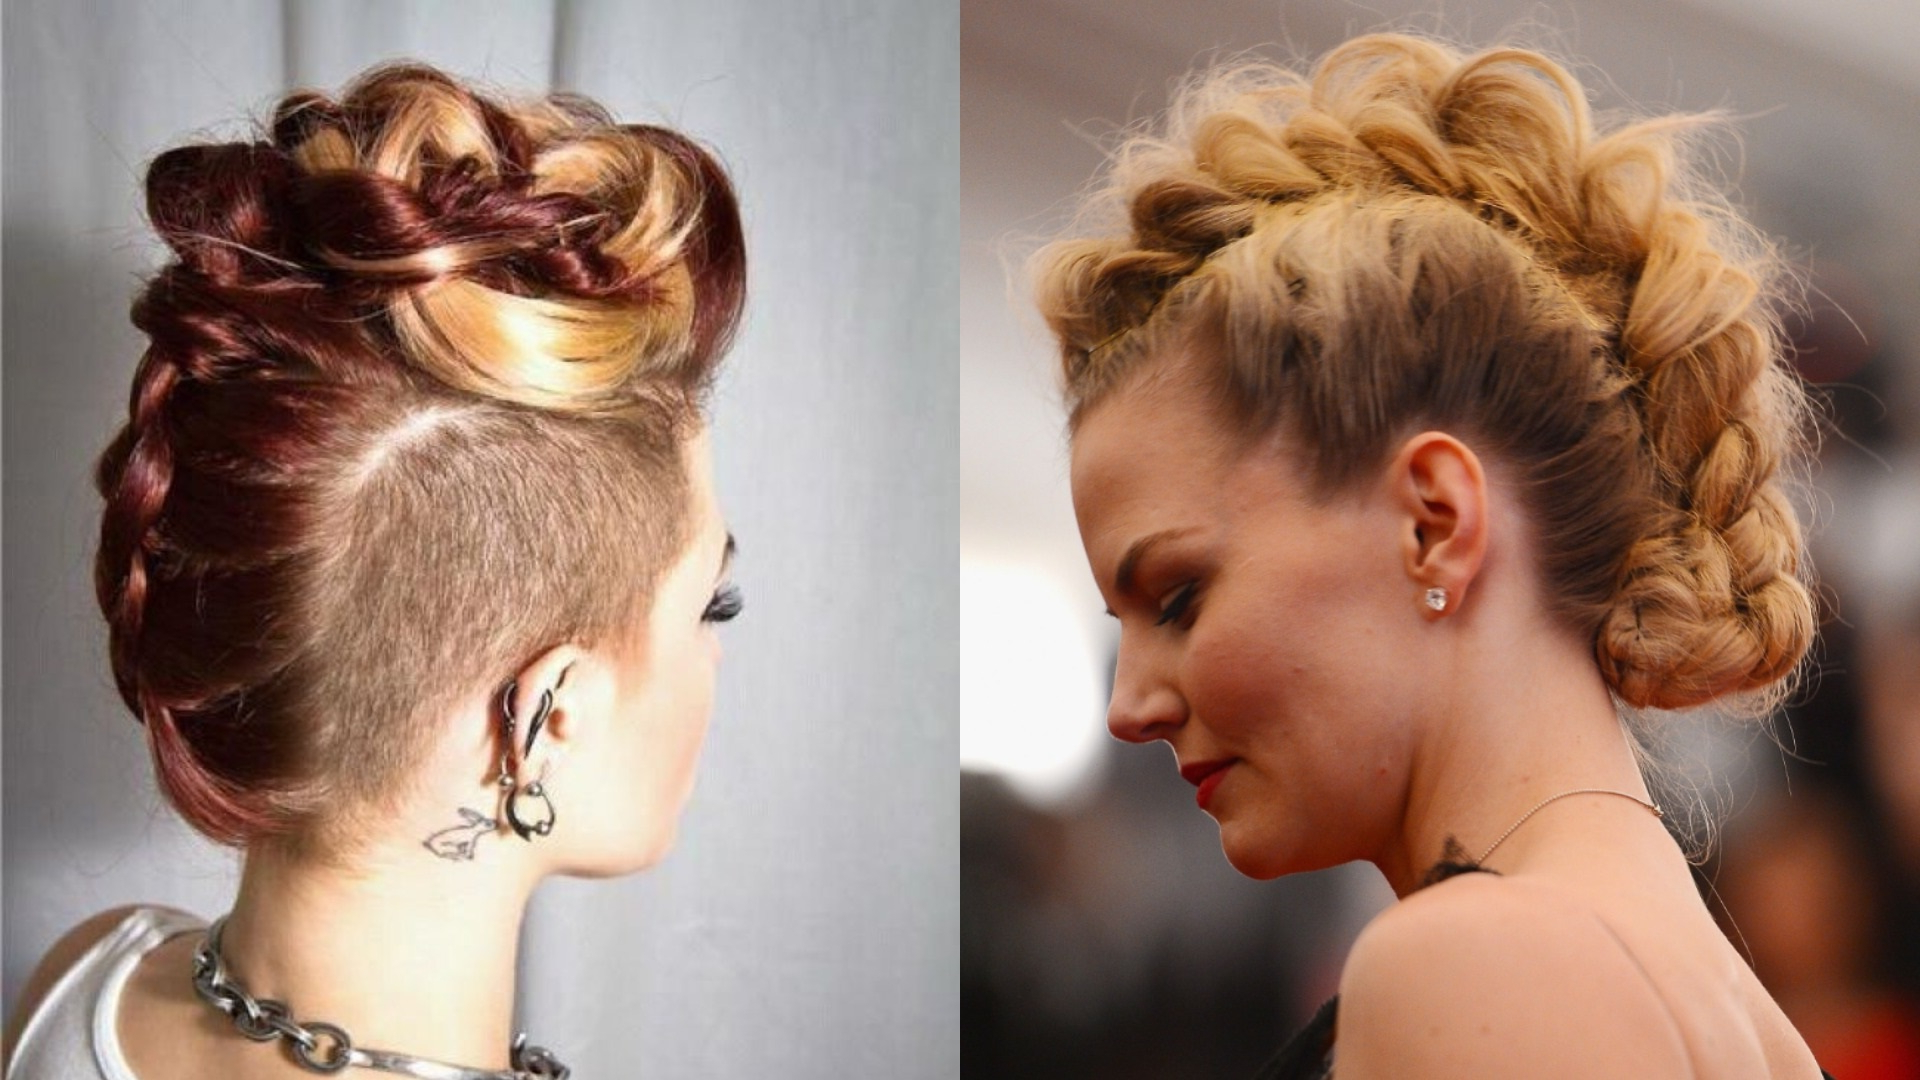 20 Braided Mohawk Hairstyles For Women – Haircuts Intended For Well Liked Mohawk Under Braid Hairstyles (View 17 of 20)